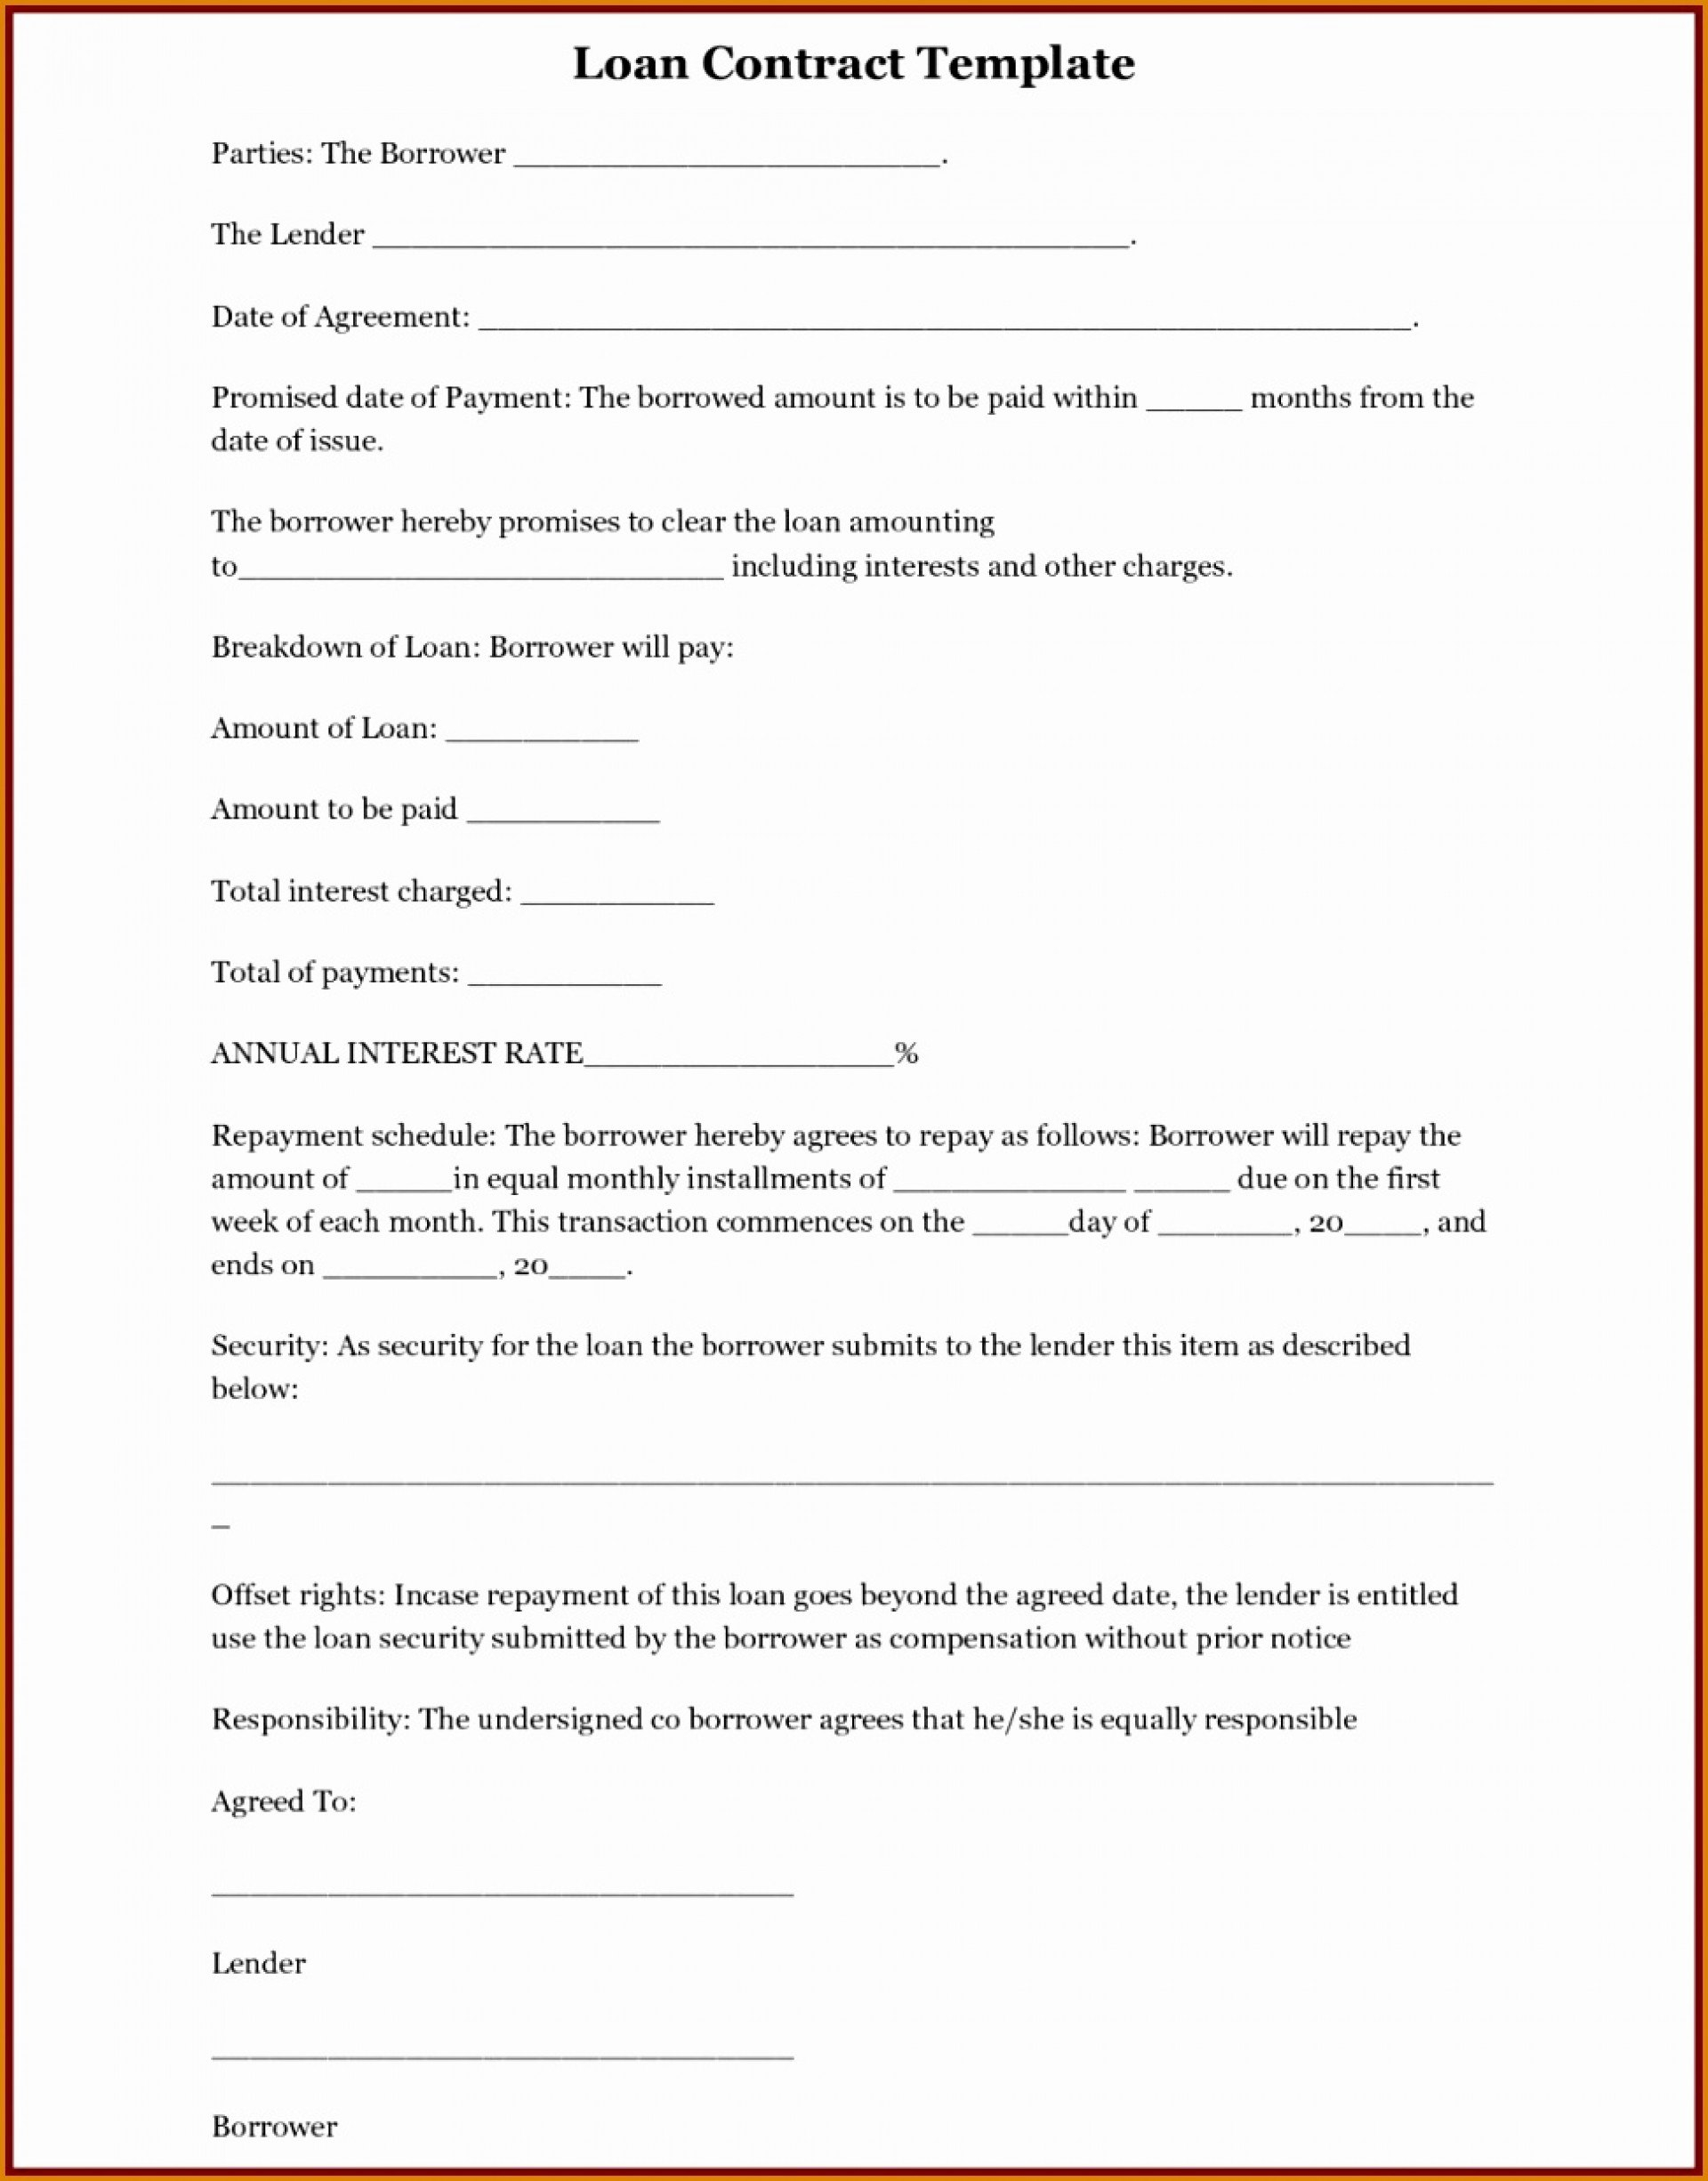 Family Loan Agreement Template Contract For Borrowing Moneym Pertaining To Family Loan Agreement Template Free